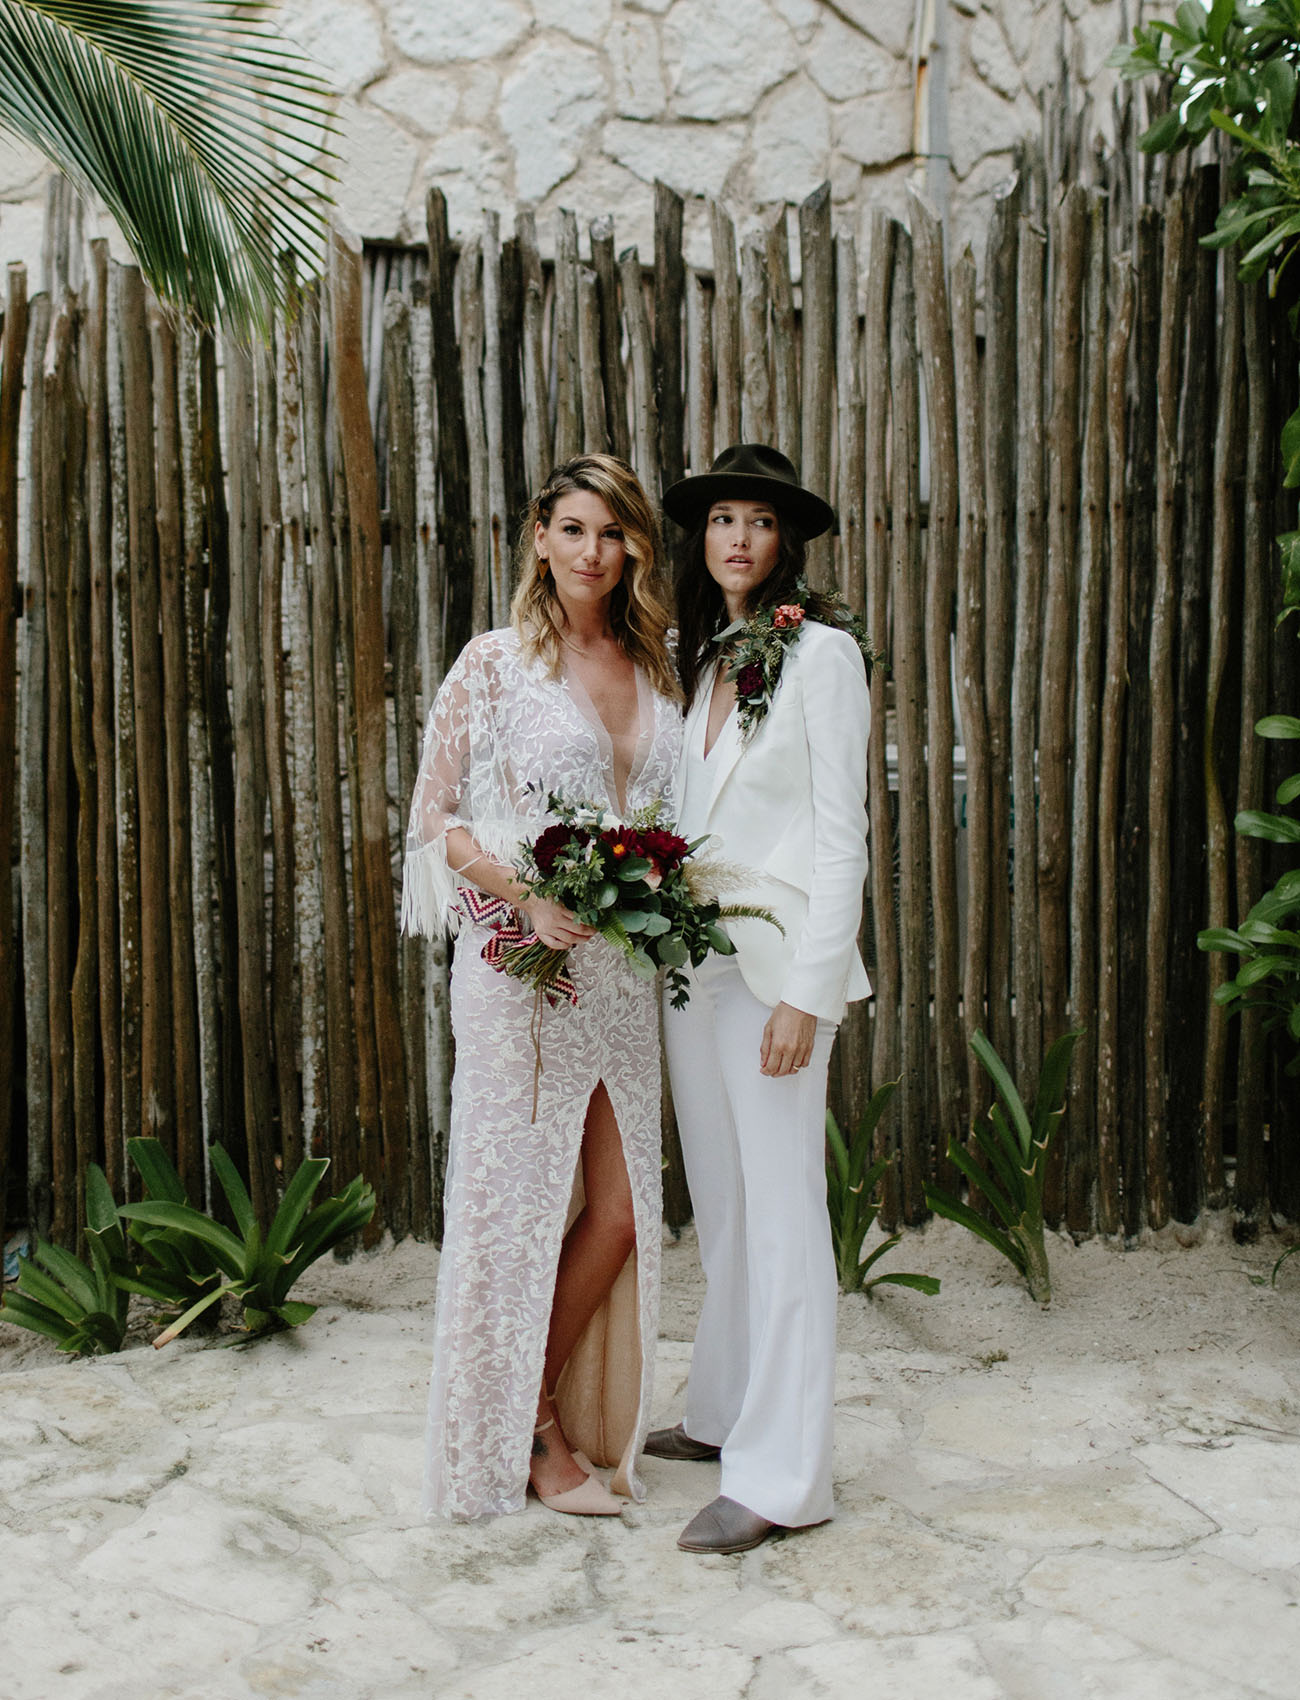 The Beach Meets Rock ?N? Roll at this Moody Wedding in Tulum